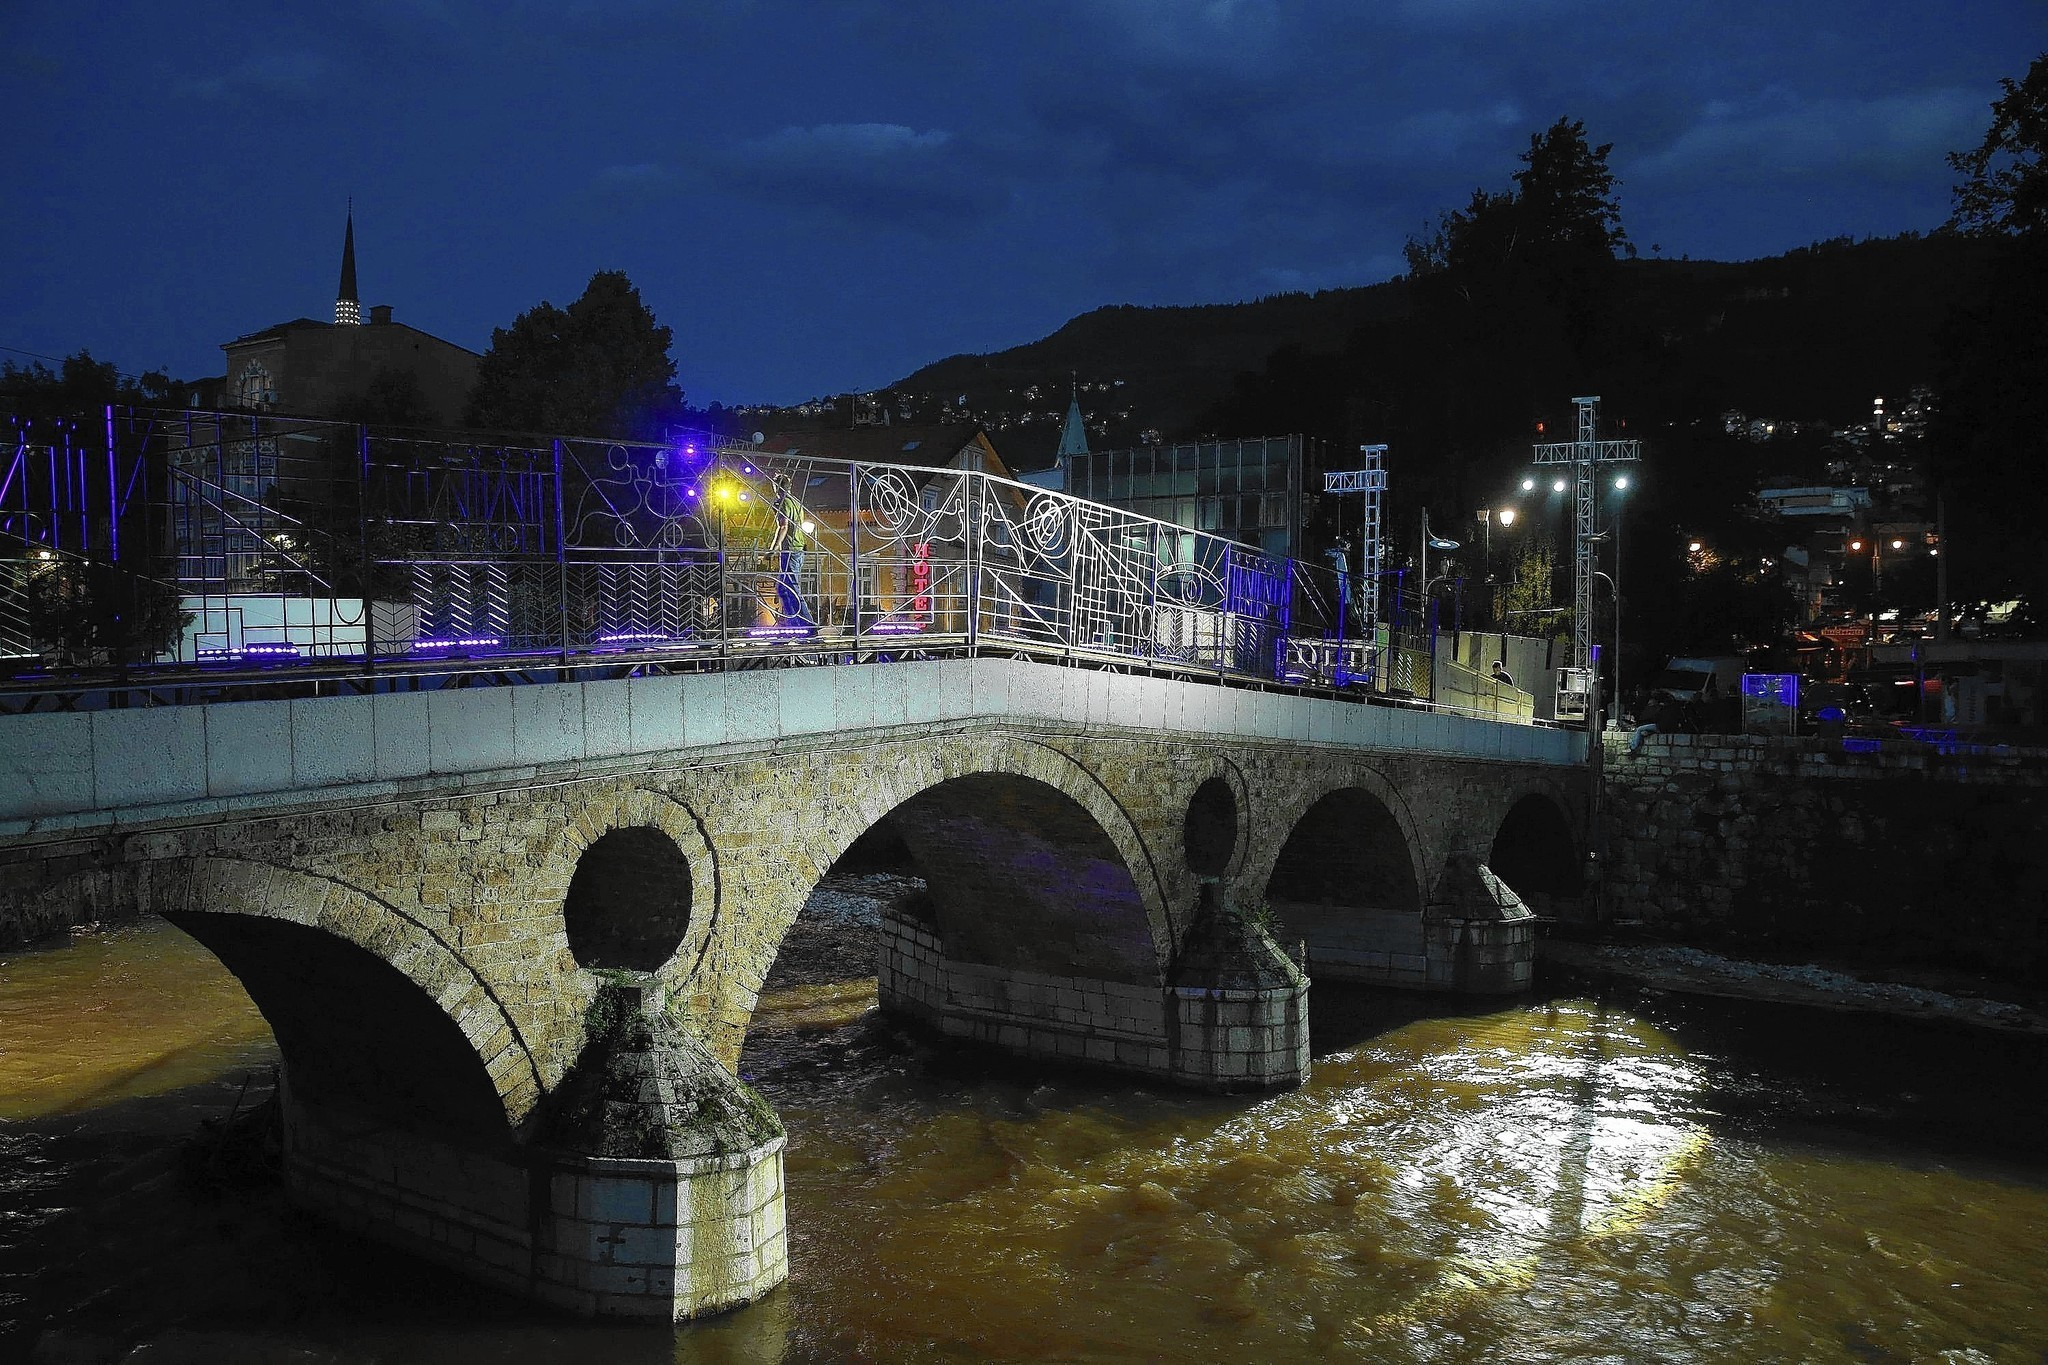 Sarajevo begins to heal from its haunted history